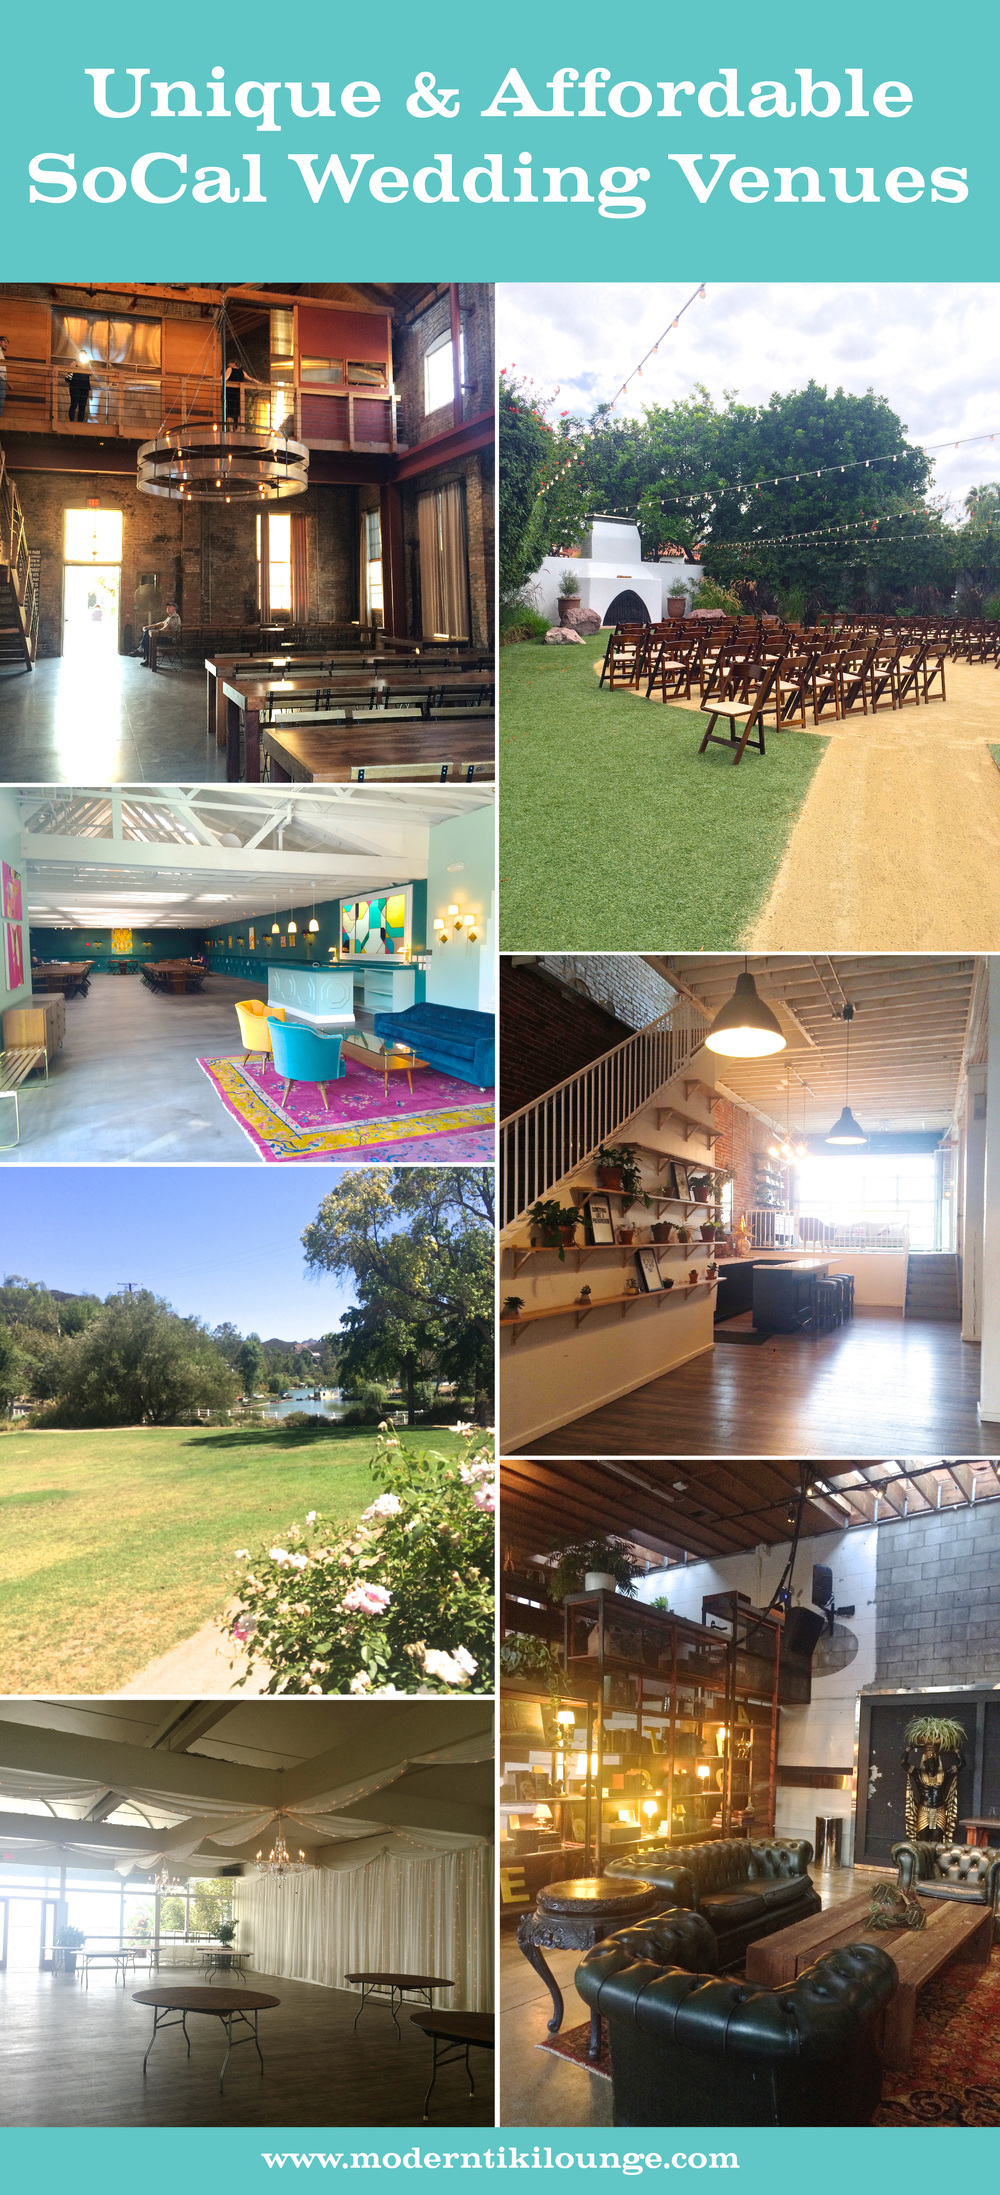 unique-affordable-socal-wedding-venues.jpg